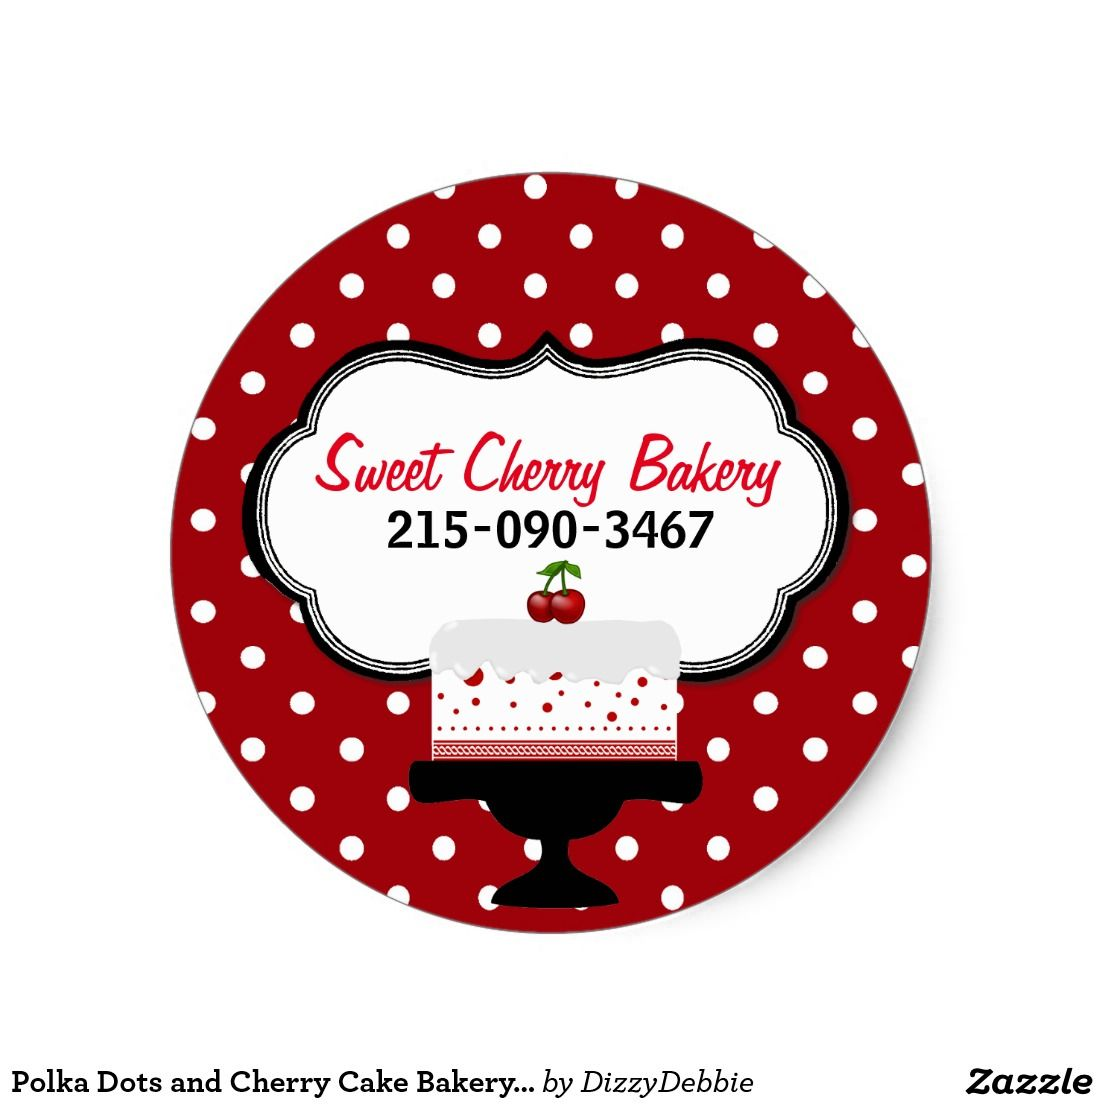 Polka dots and cherry cake bakery sticker